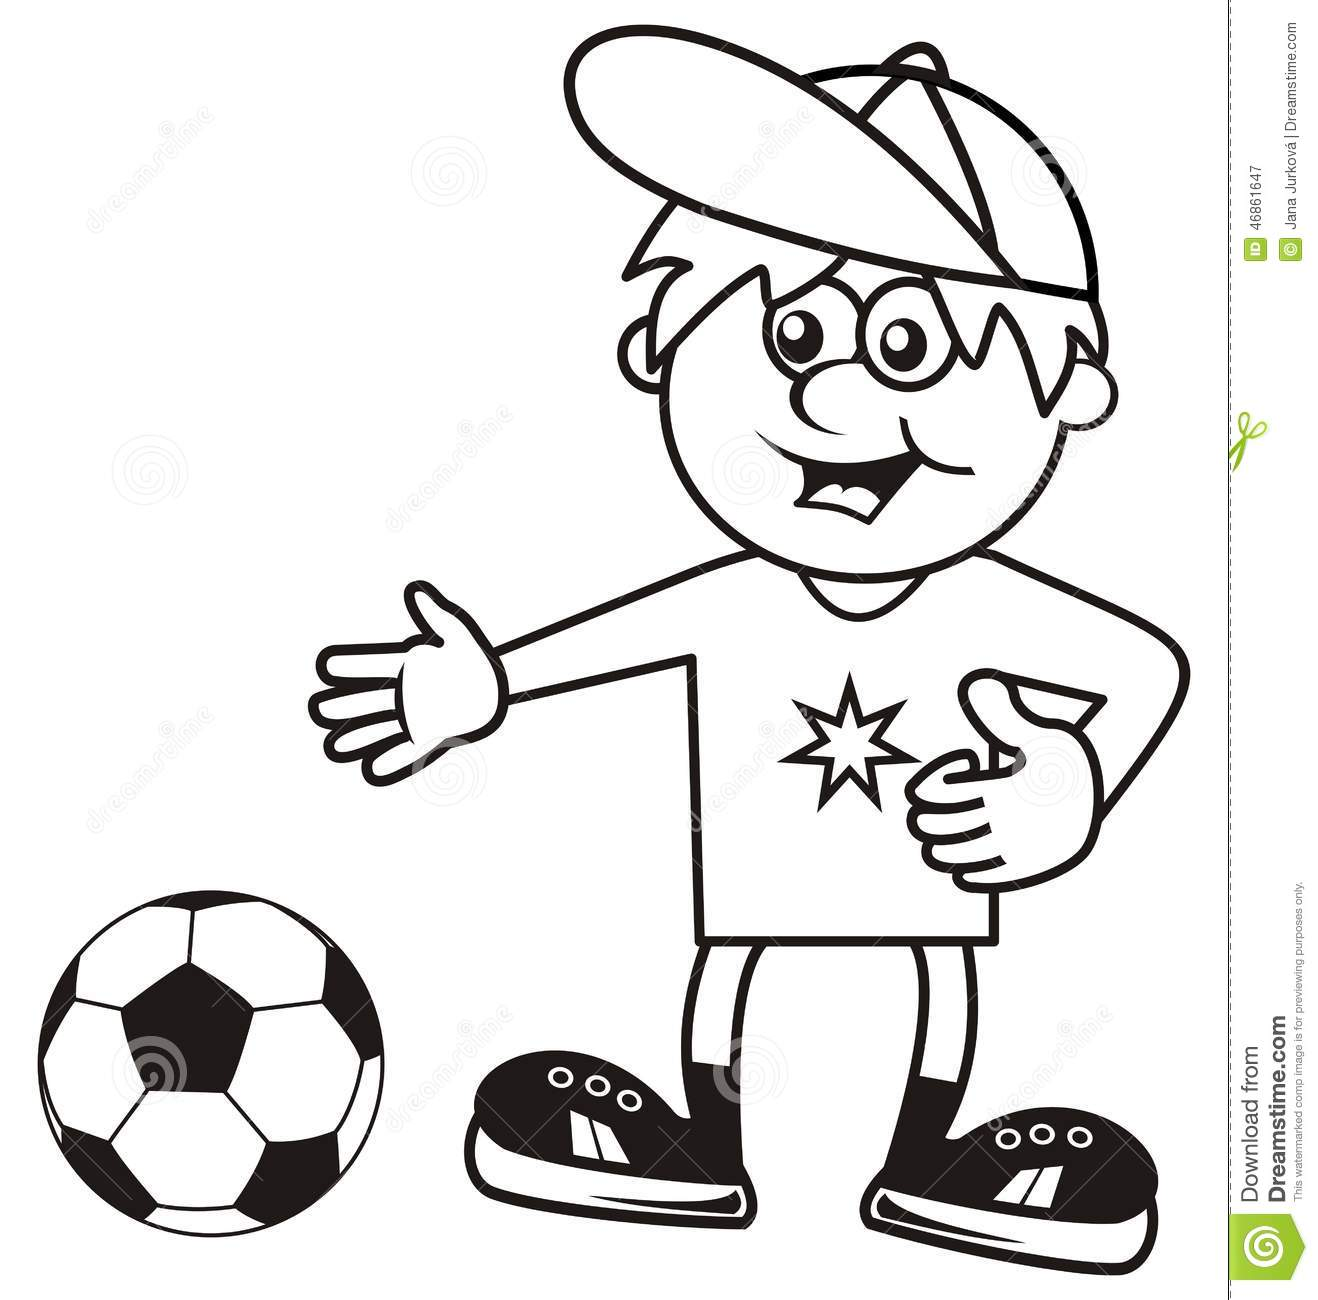 Sportsman, coloring book stock vector. Illustration of baby - 46861647